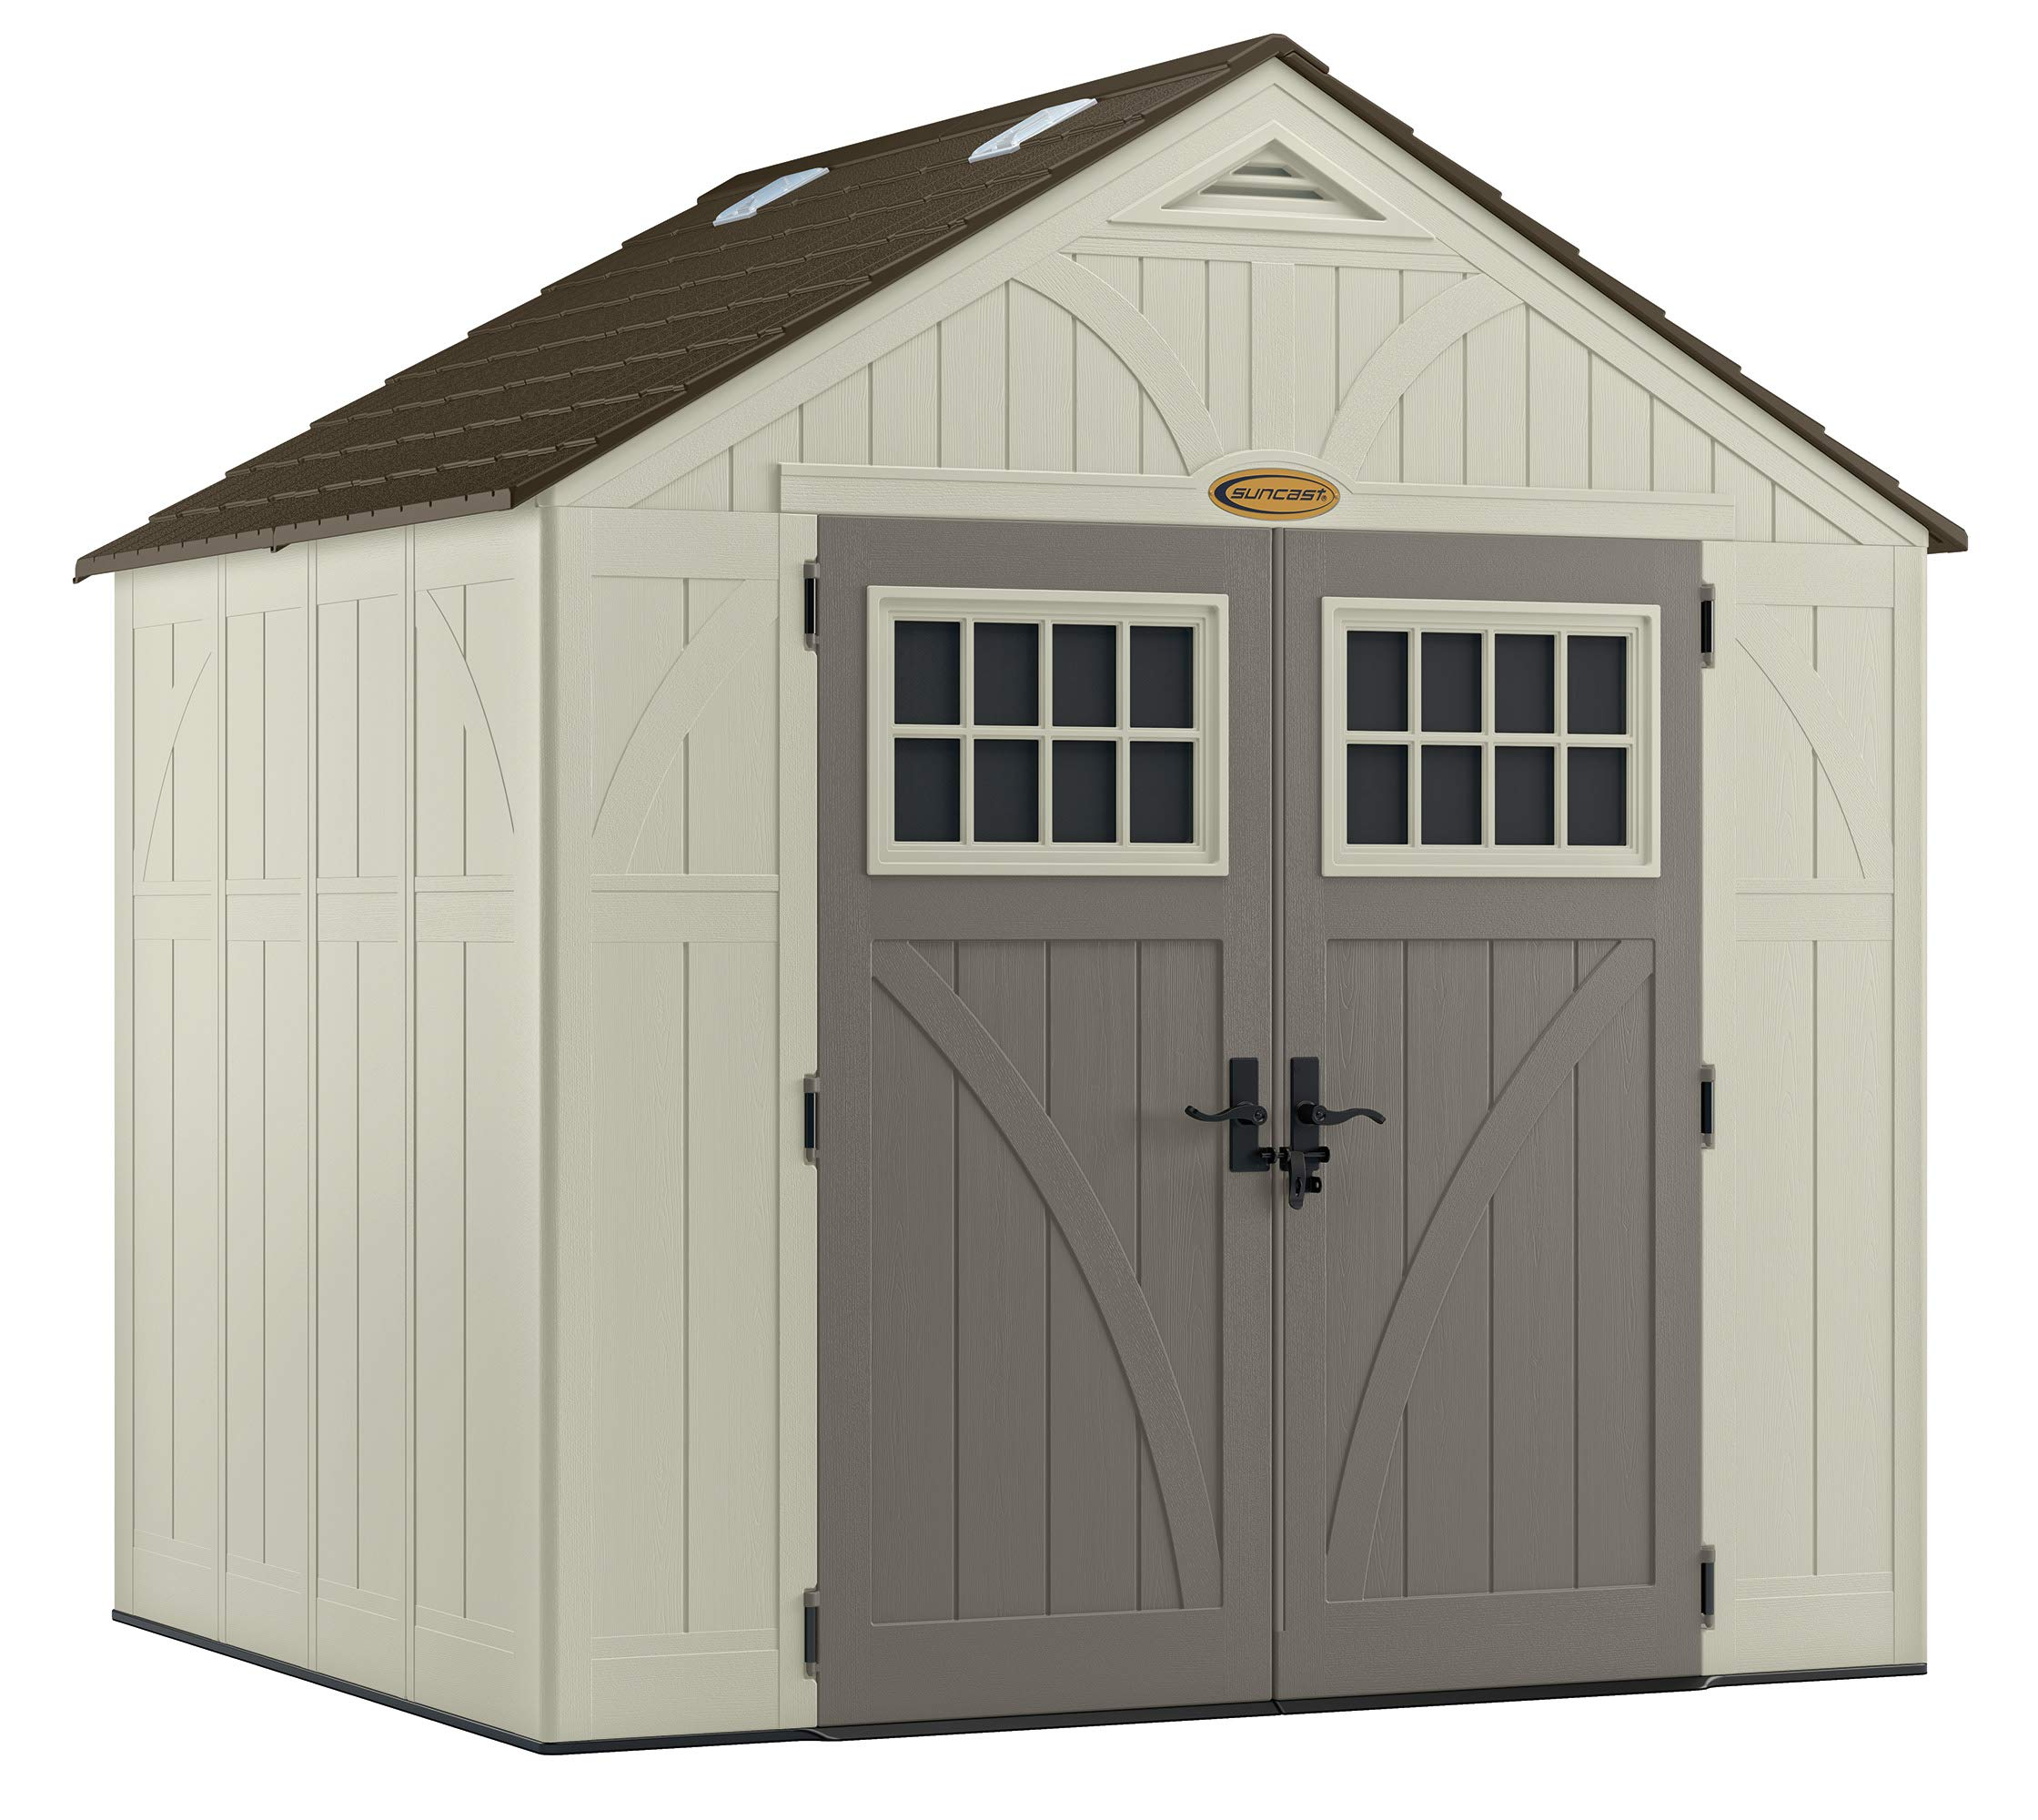 PARTS LOTS CUSTOM LEGO GARAGE WITH DOORS ON BOTH ENDS//ROOF//FLOOR MIXED COLORS